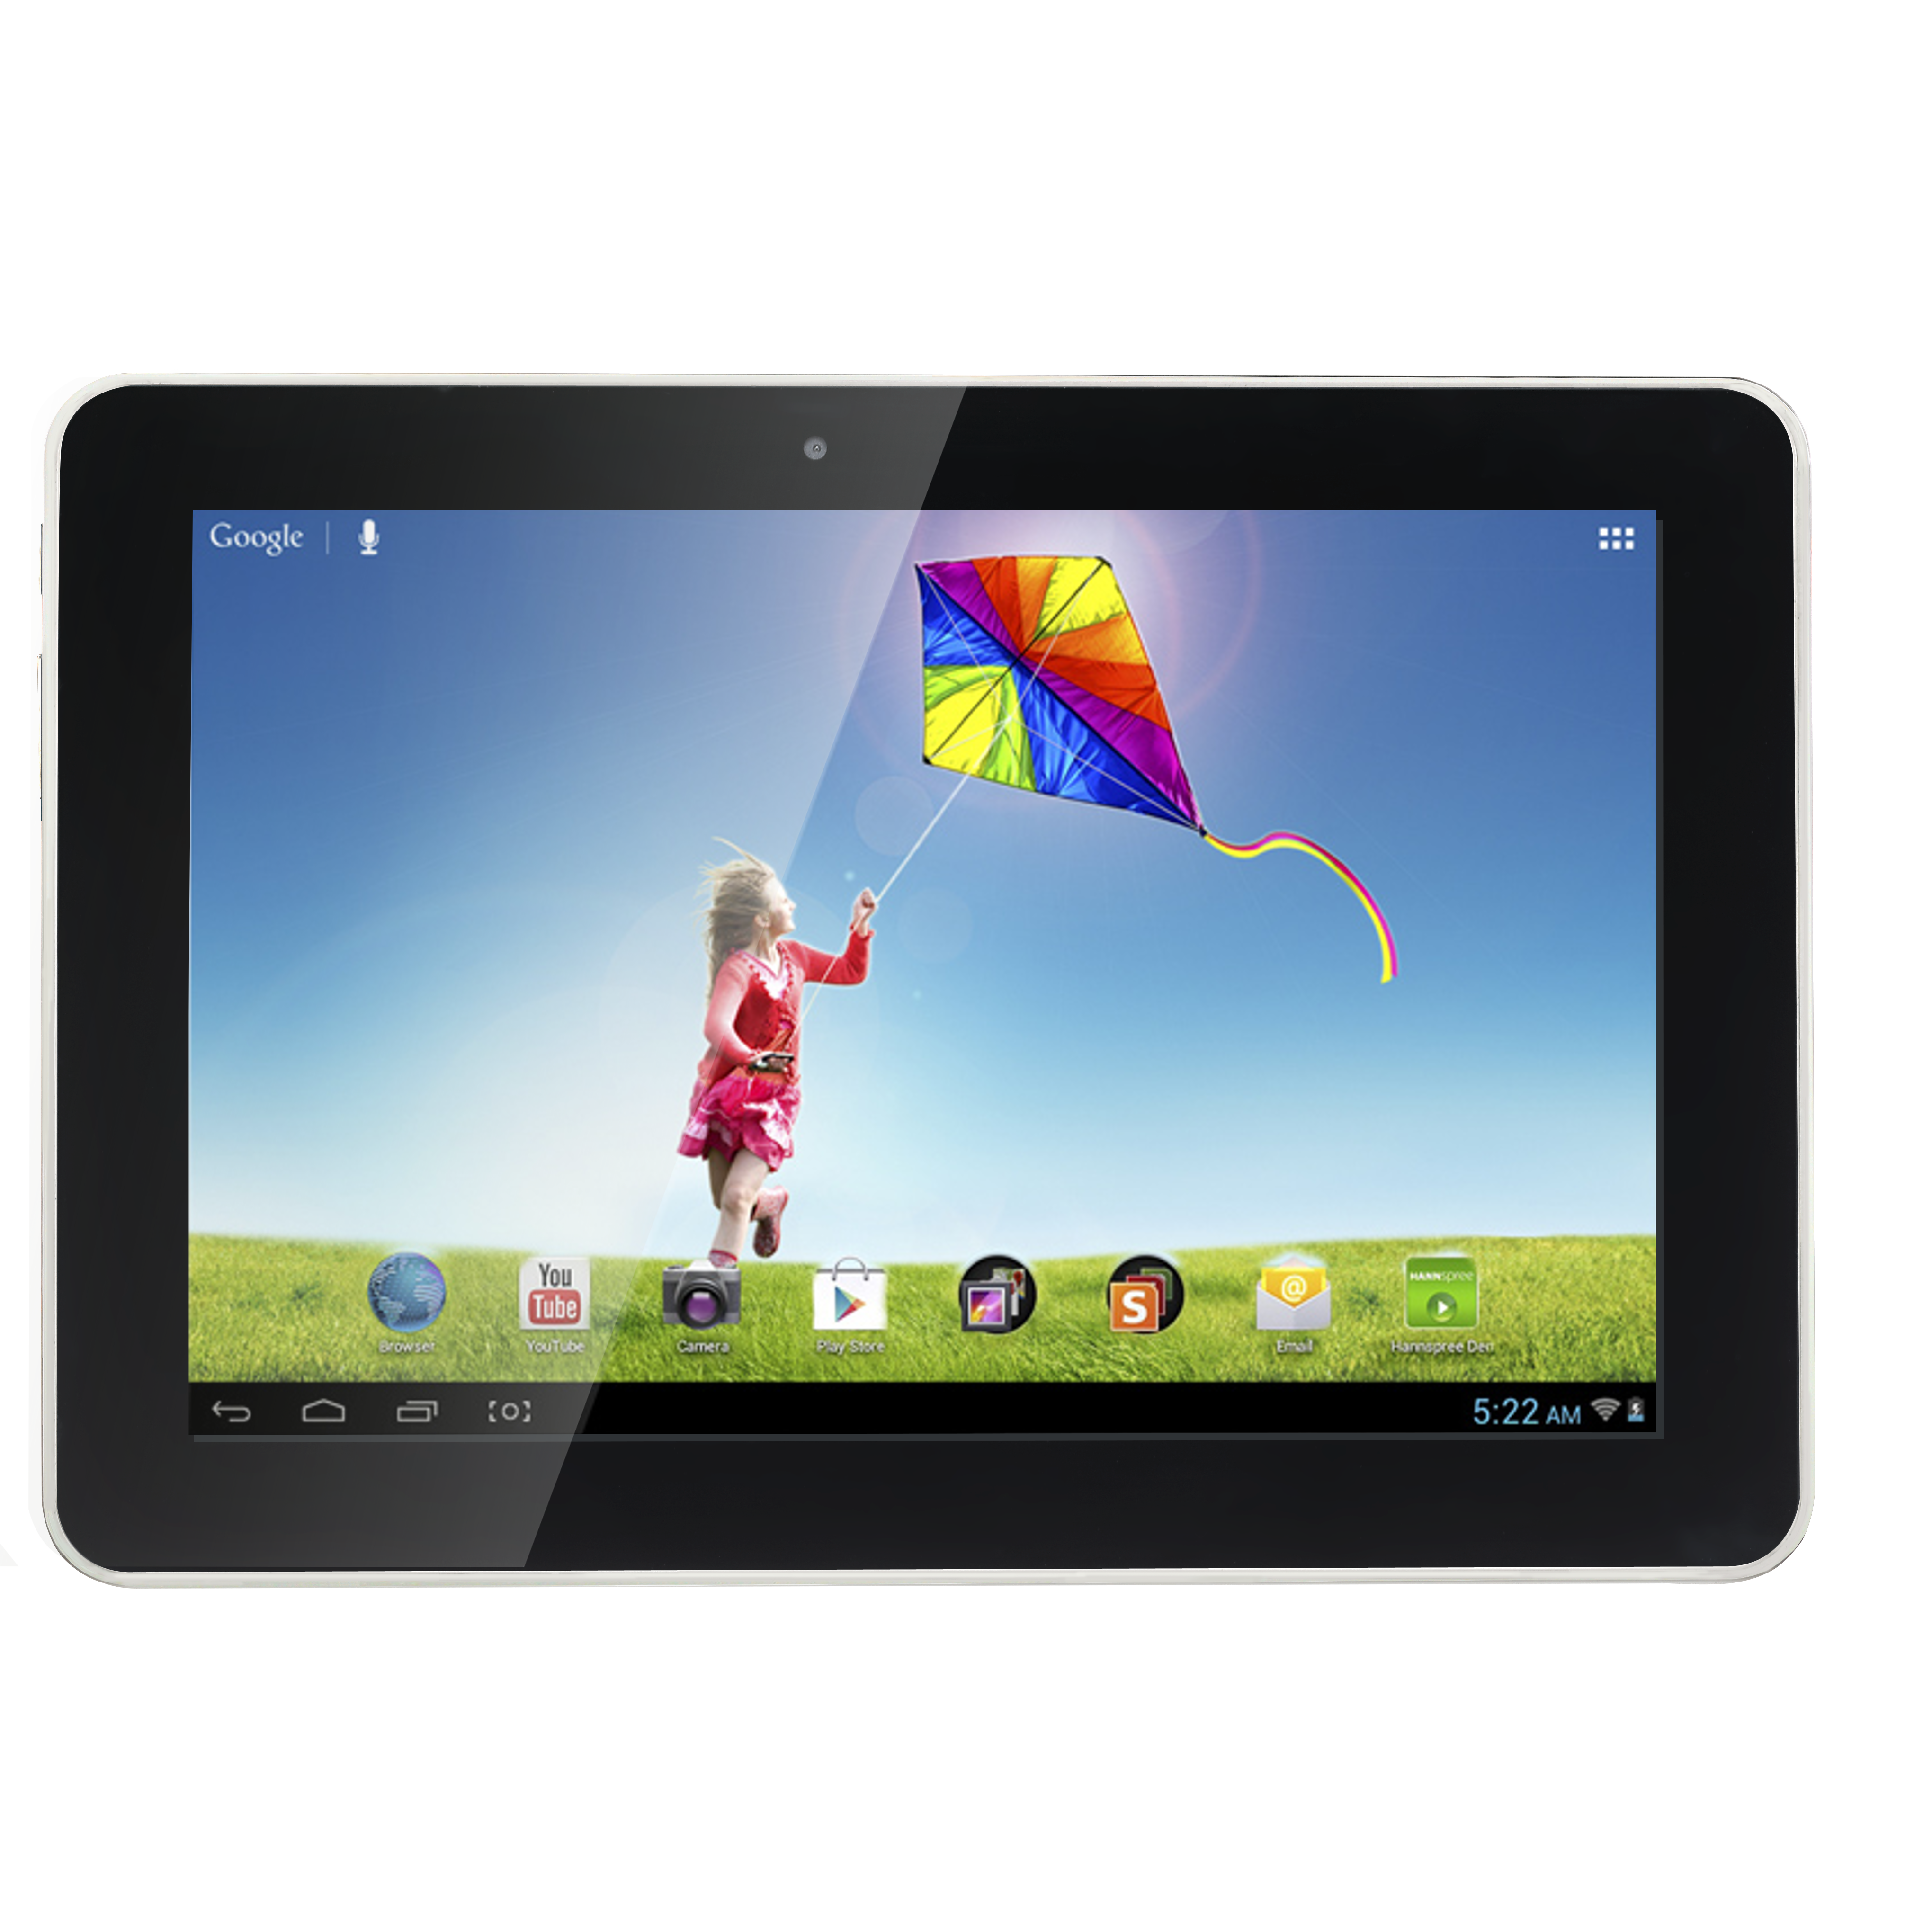 Tablet HD PNG - 117524